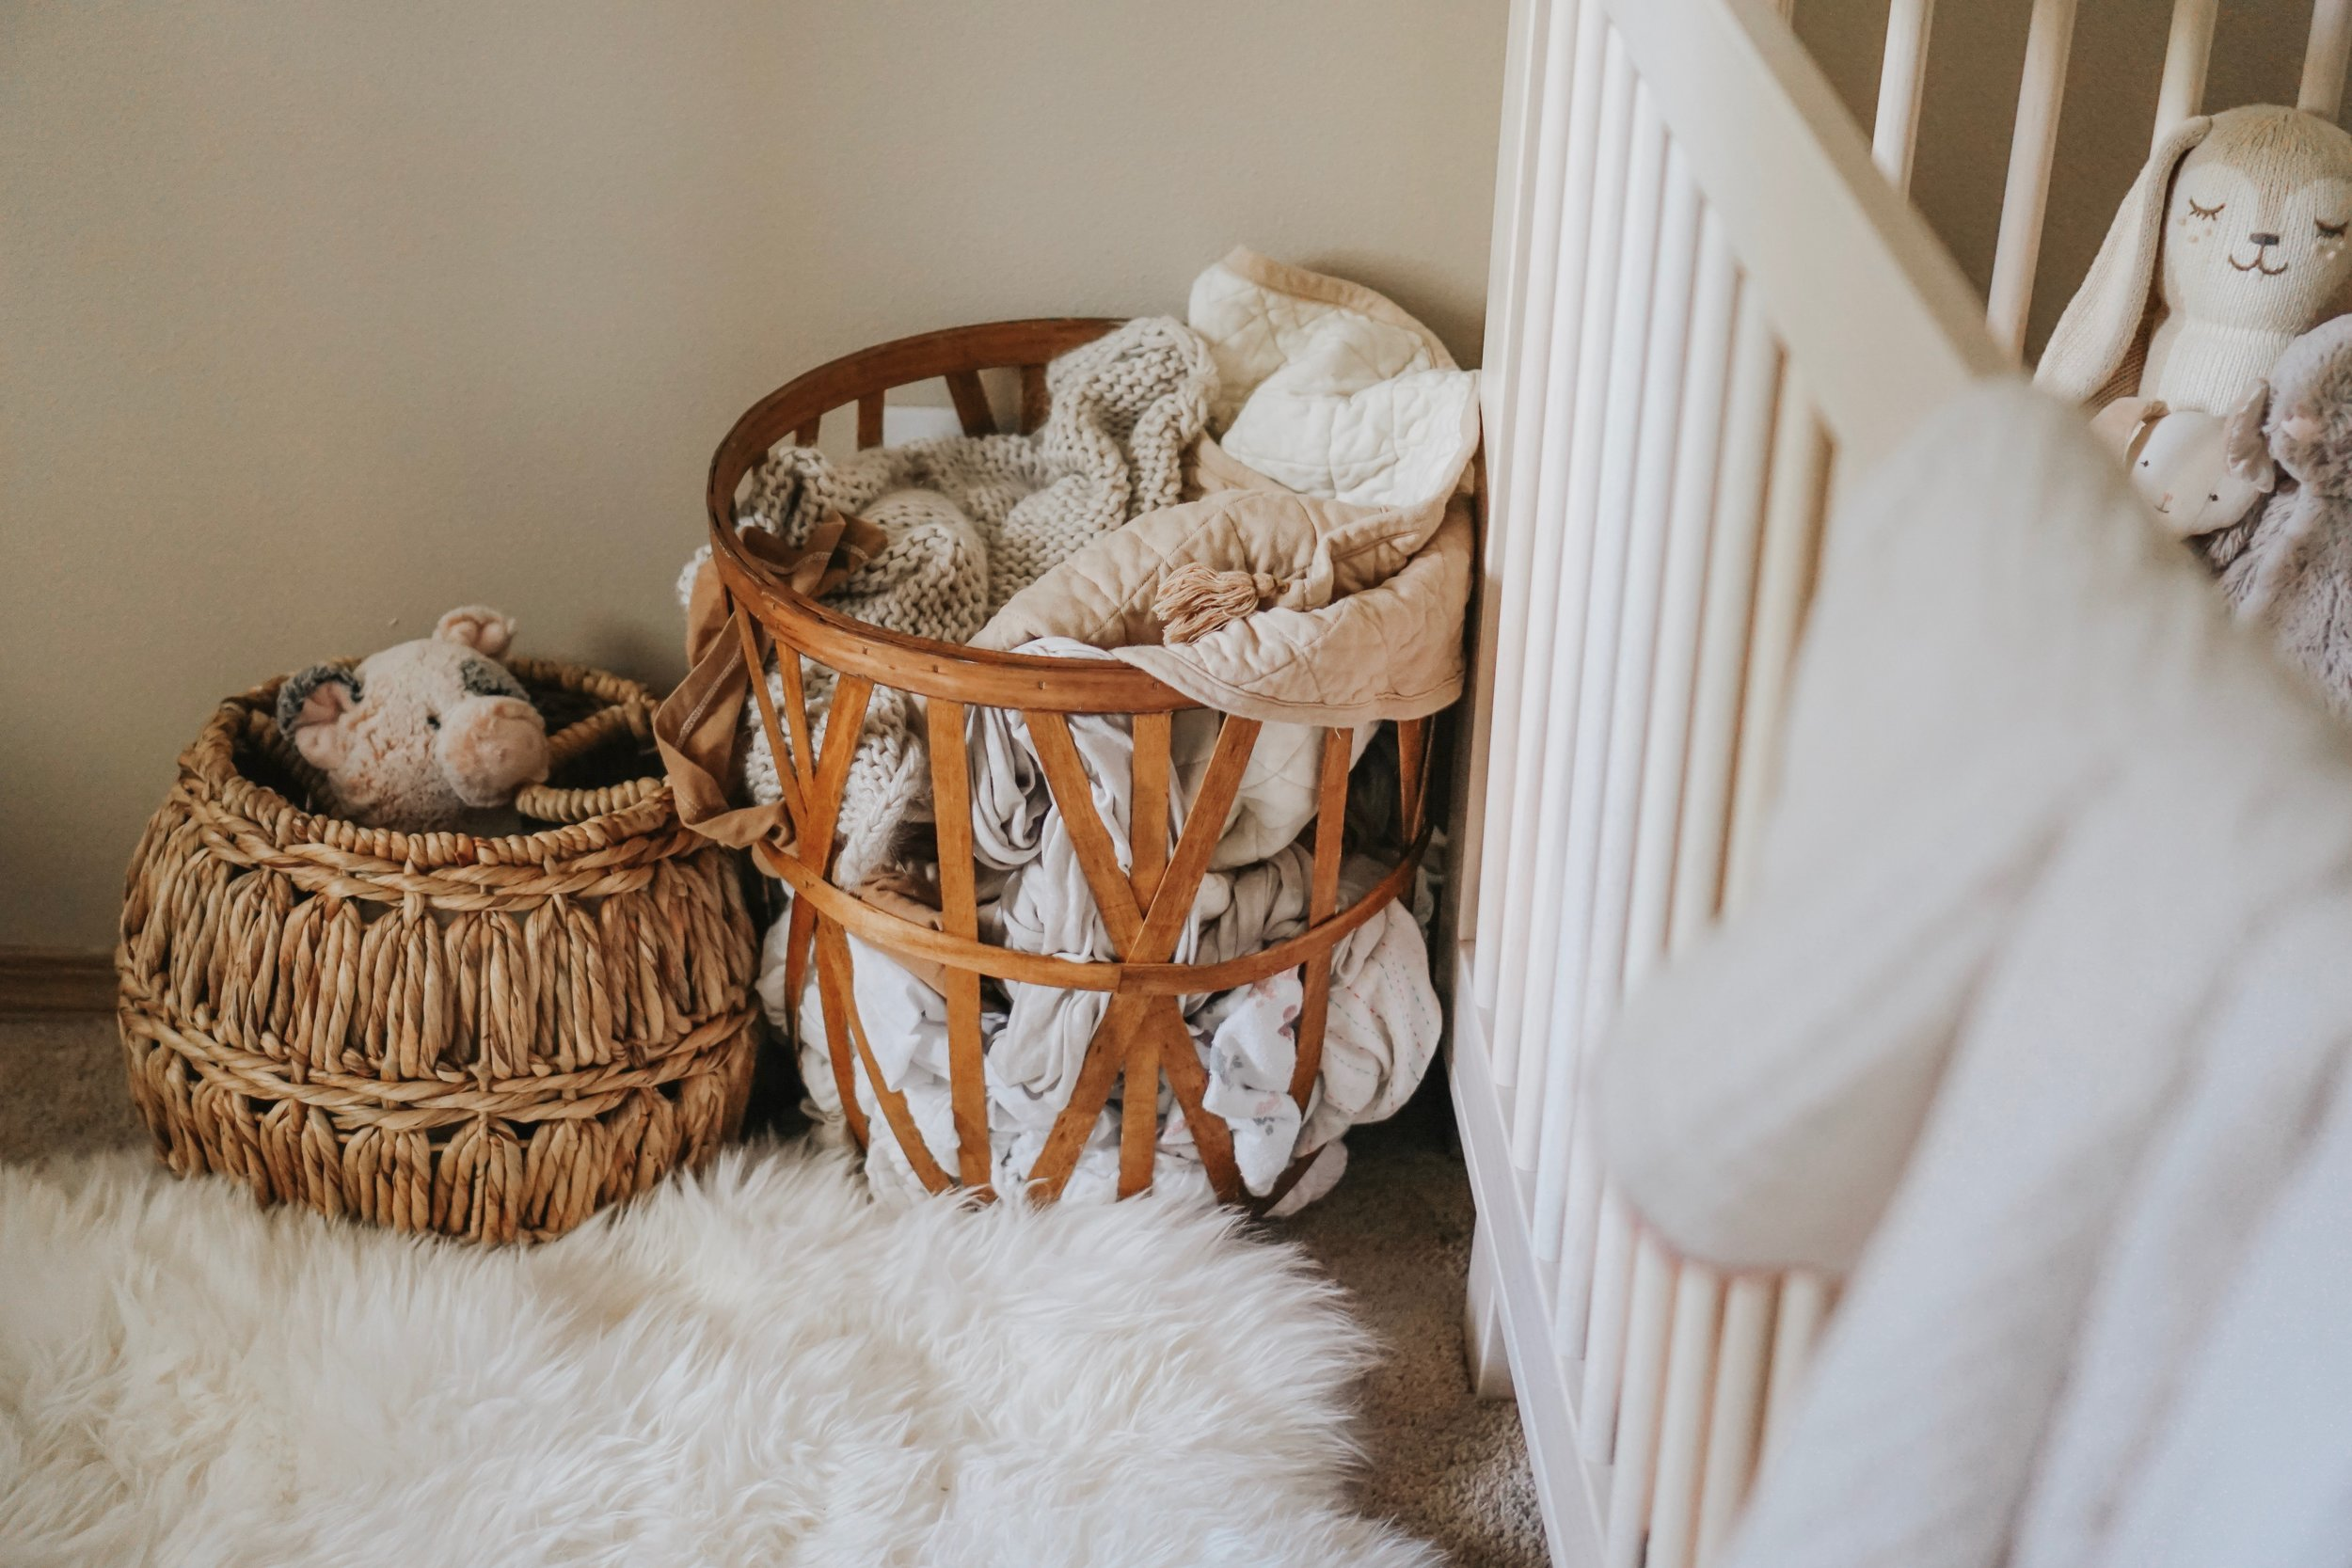 Baskets are discontinued Target |  Knit Blanket